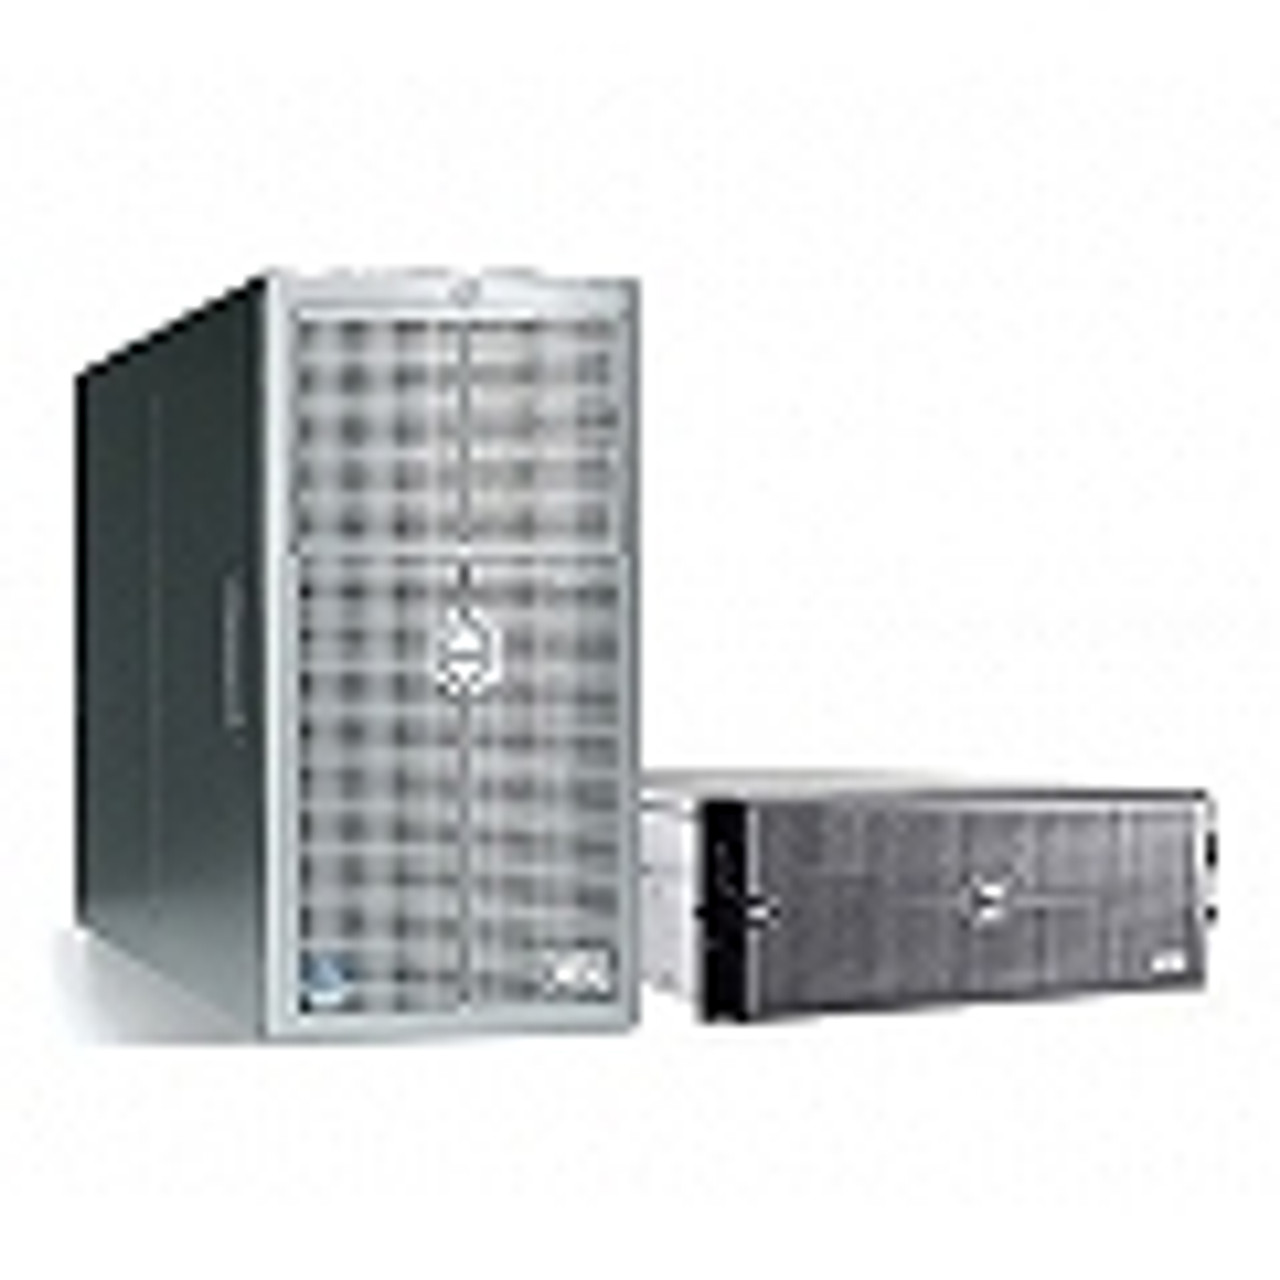 Dell PowerEdge 2800 Refurbished Servers & Replacement Spare Parts